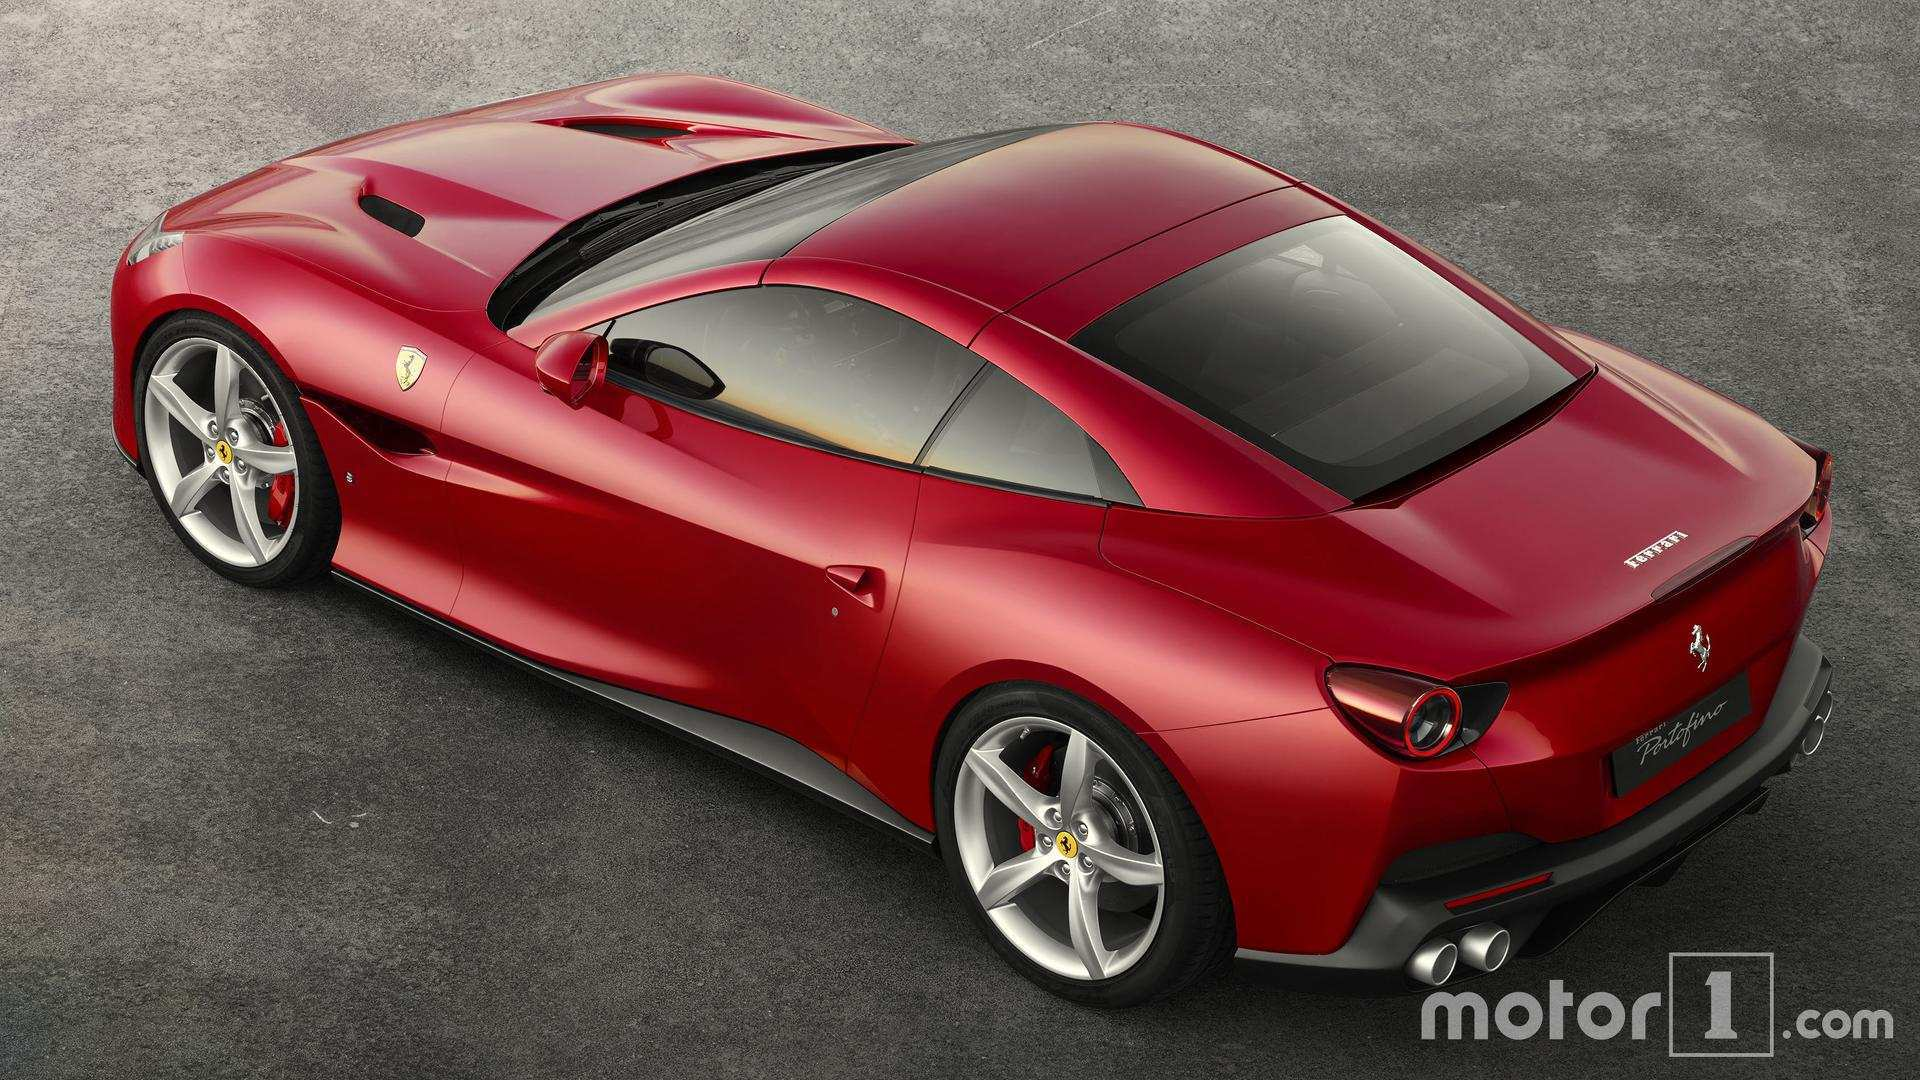 55 All New Ferrari California T 2020 Review And Release Date